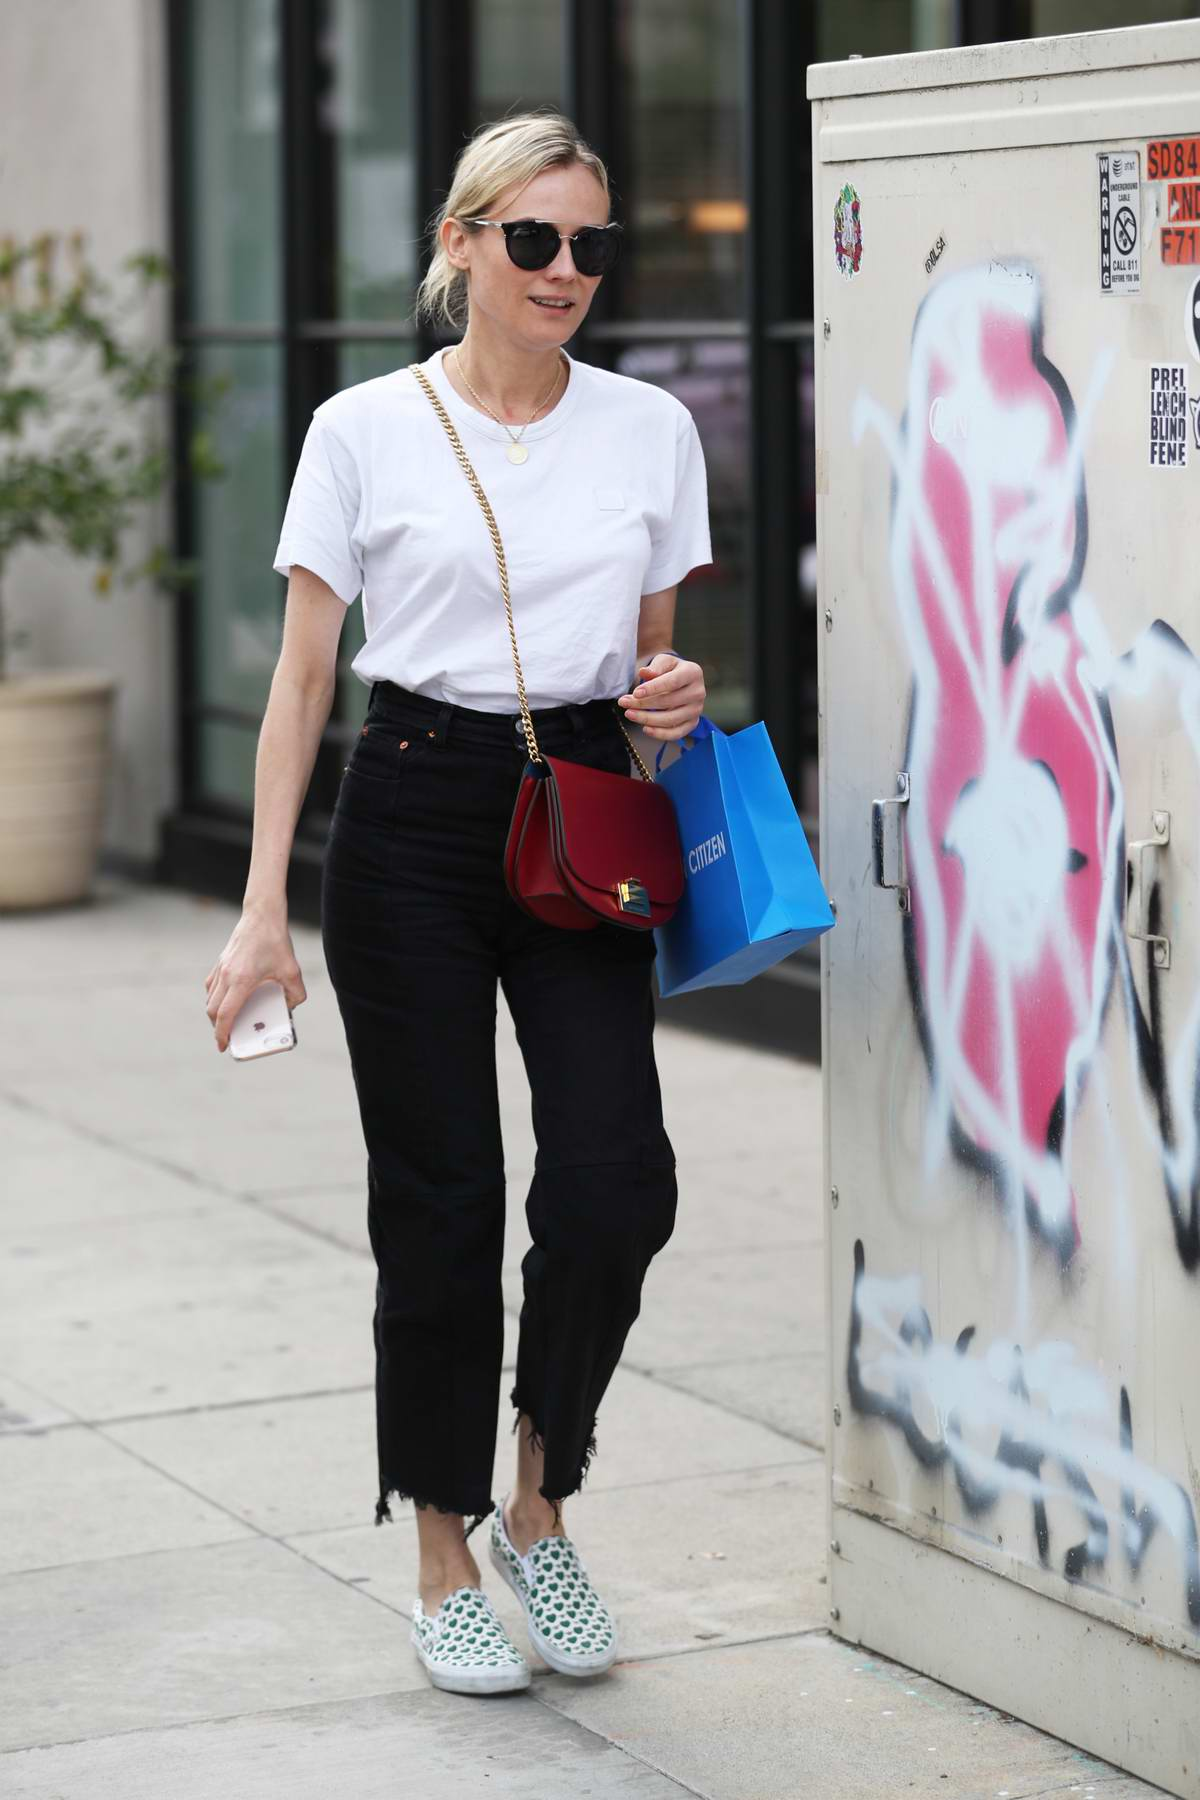 Diane Kruger shops at Cotton Citizen on Melrose place in Los Angeles